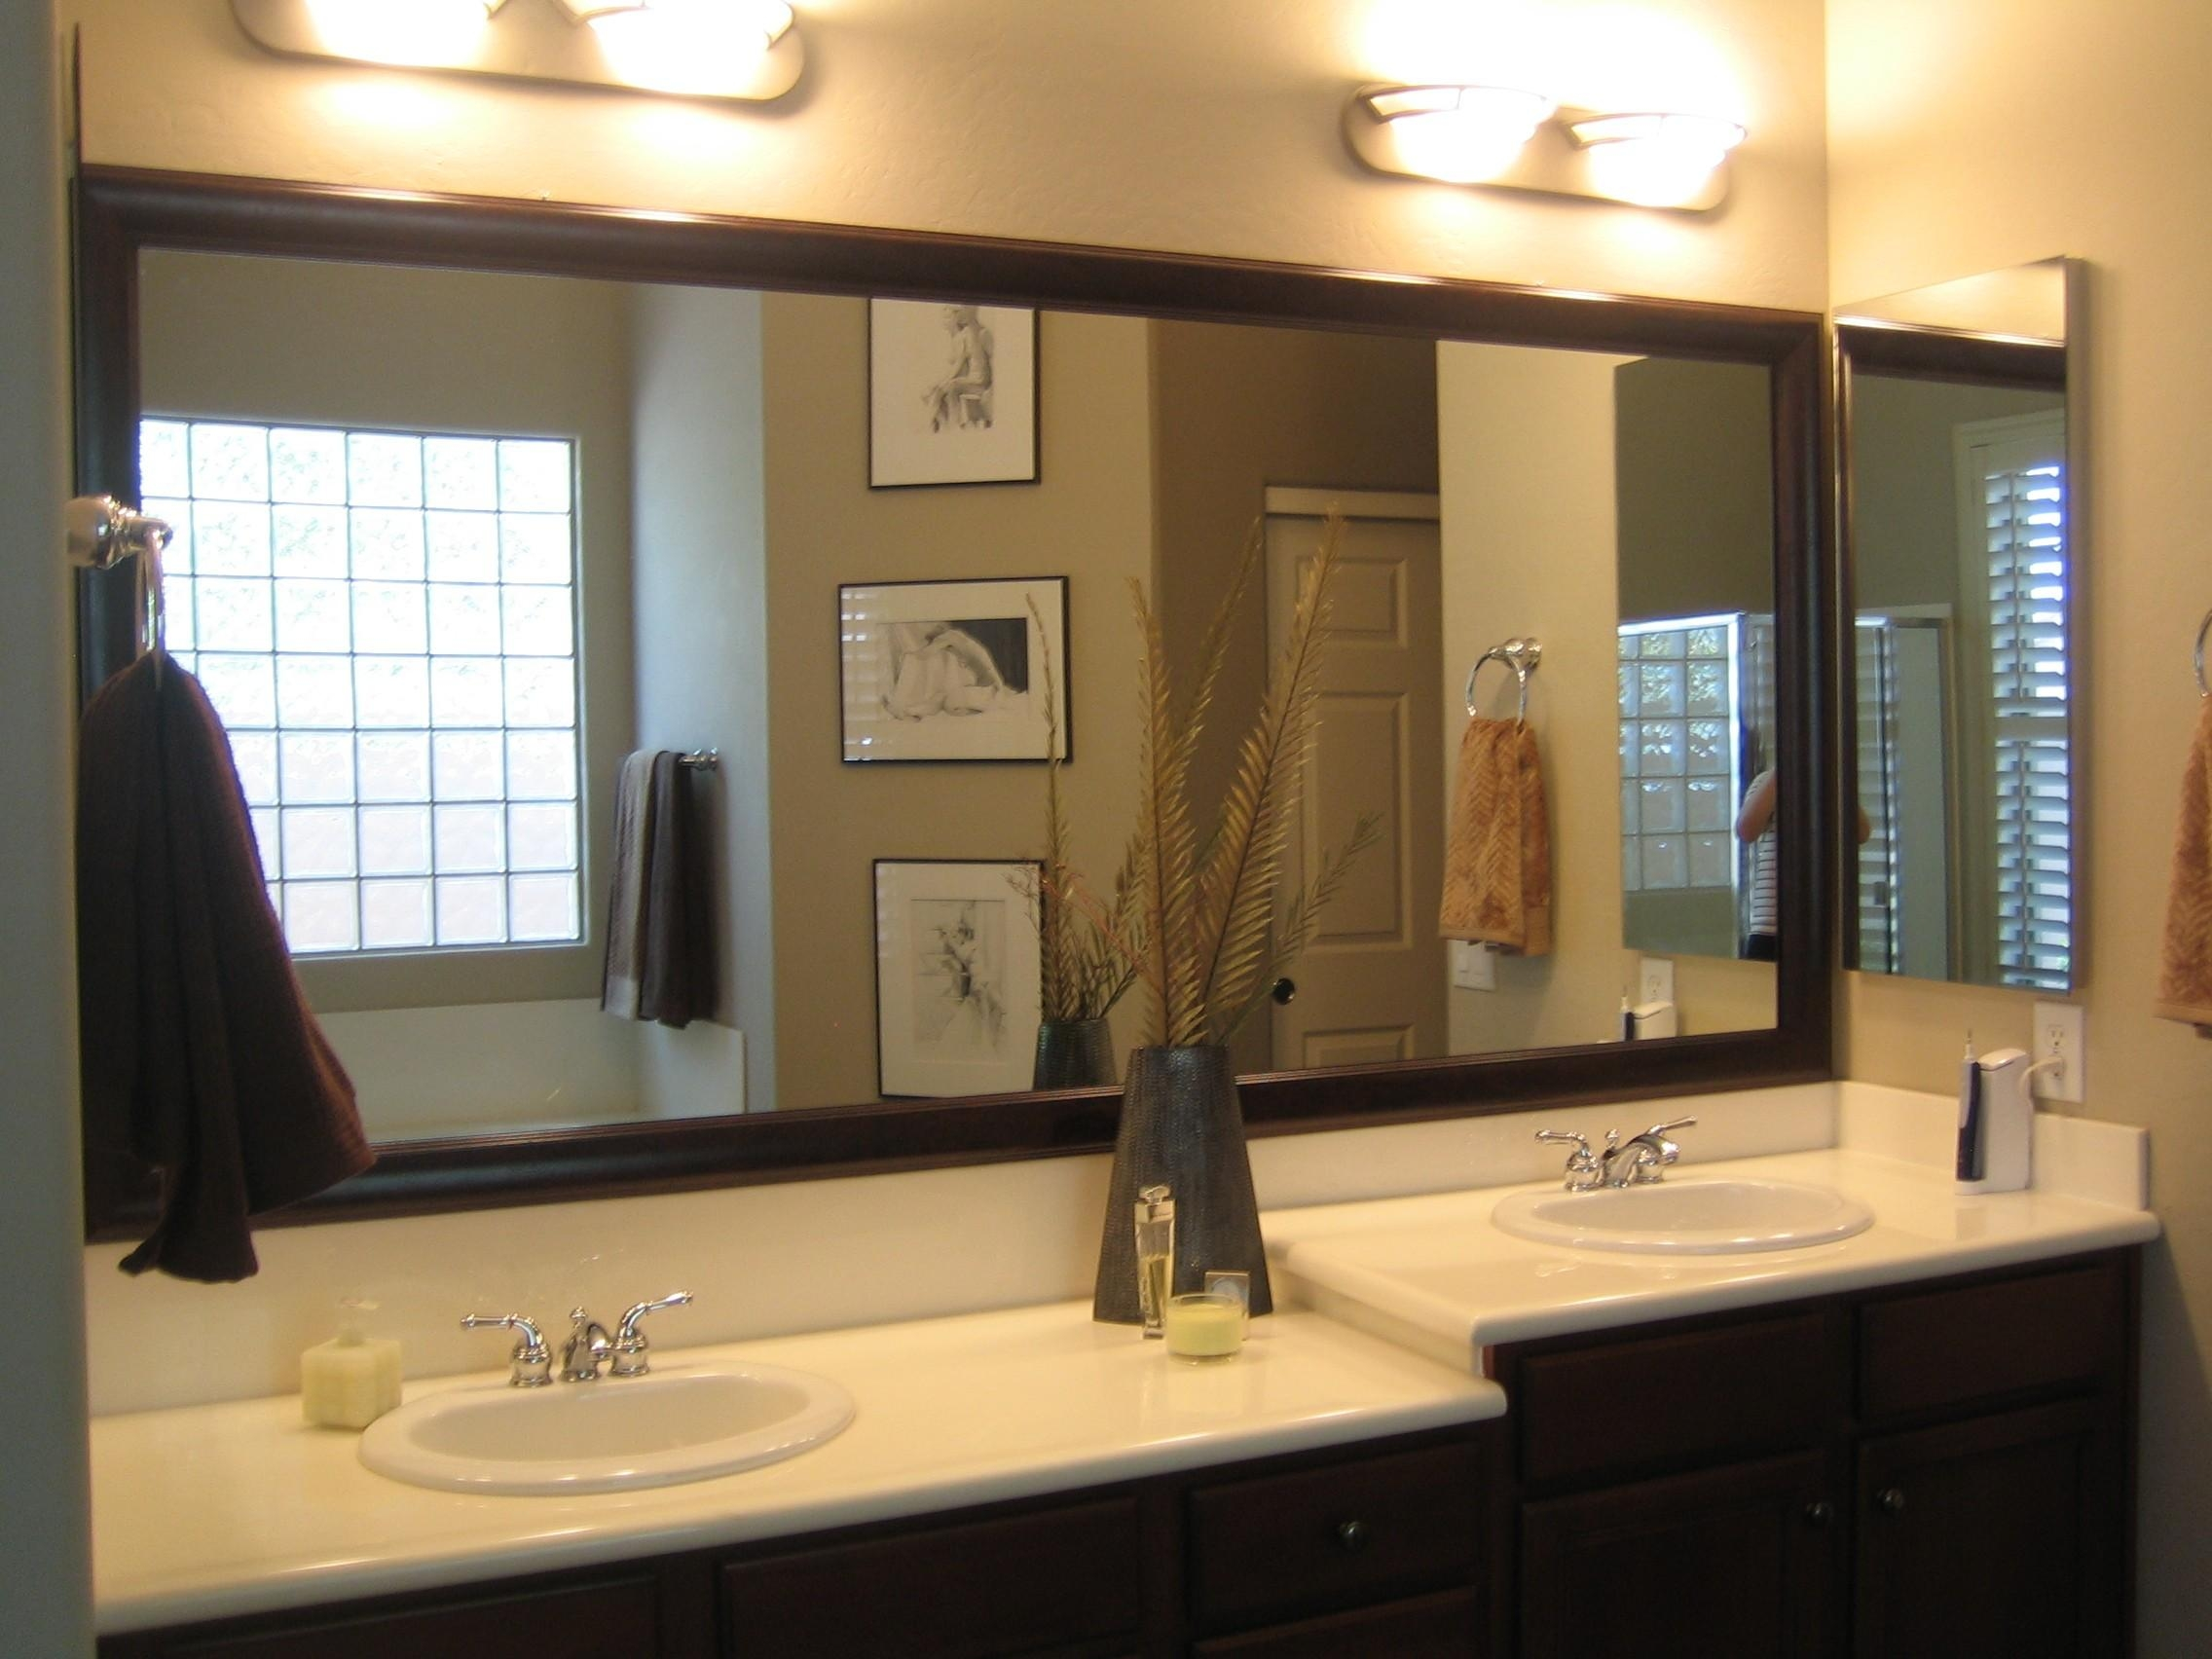 Vanity Mirror With Lights For Sale Tags : Adorable Bathroom Pertaining To Lights For Bathroom Mirrors (Photo 15 of 20)